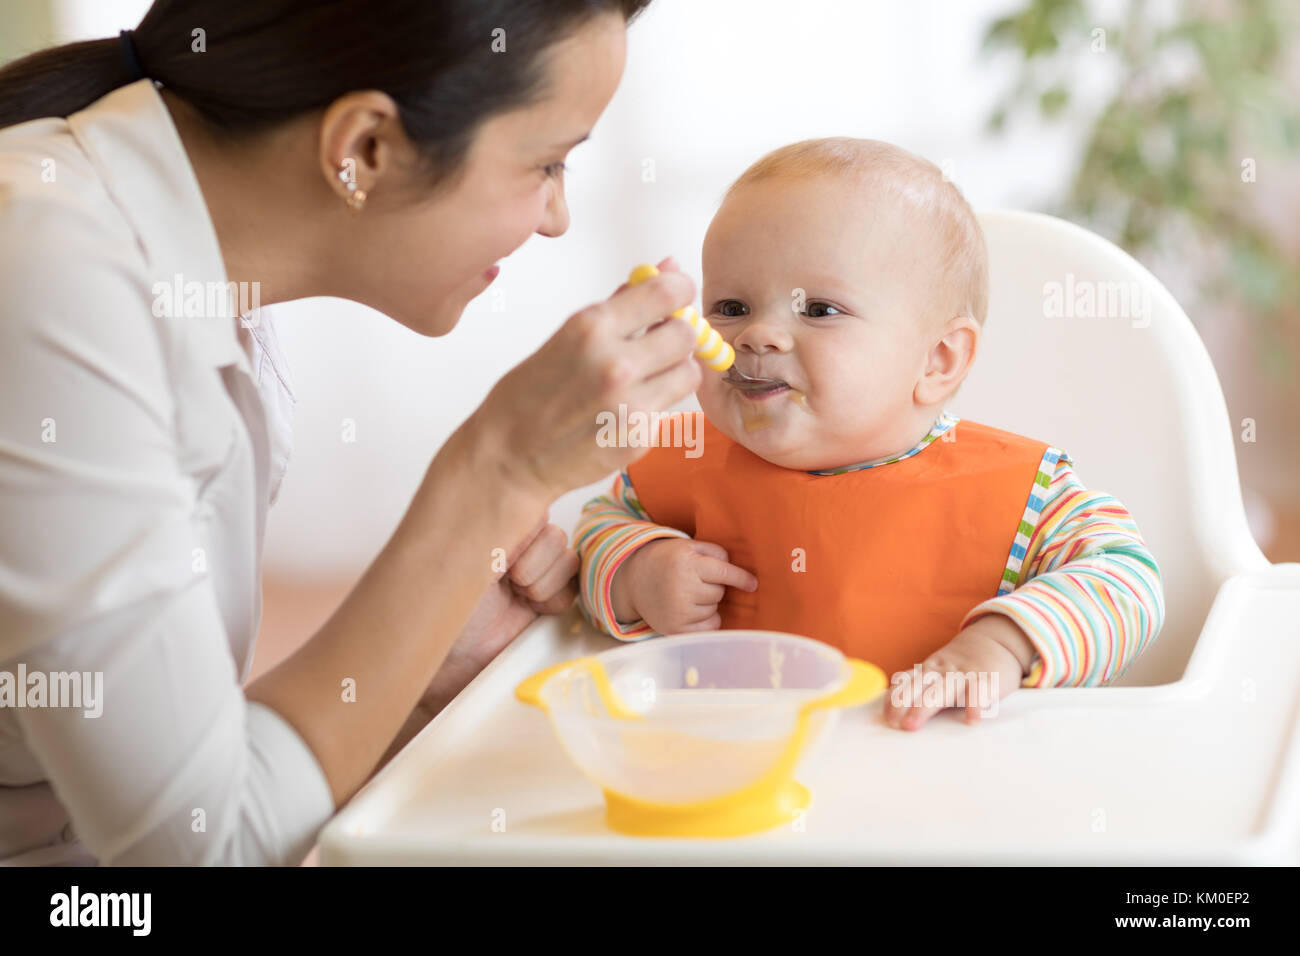 Food, child and parenthood concept - mom with puree and spoon feeding baby at home - Stock Image